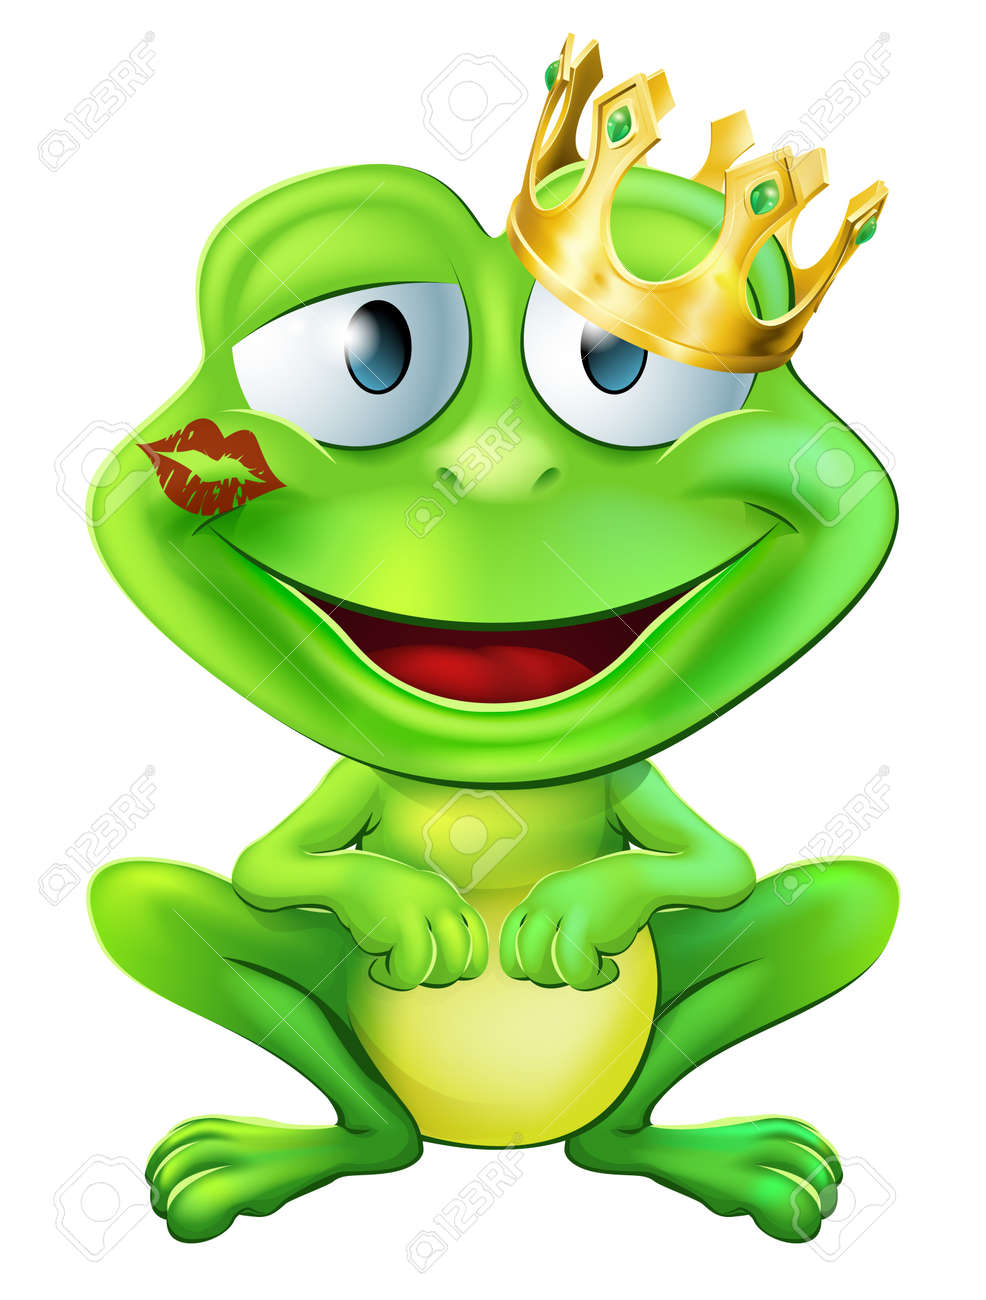 An illustration of a cute frog cartoon character wearing a gold crown with a red lipstick mark on his lips form a kiss - 18465845